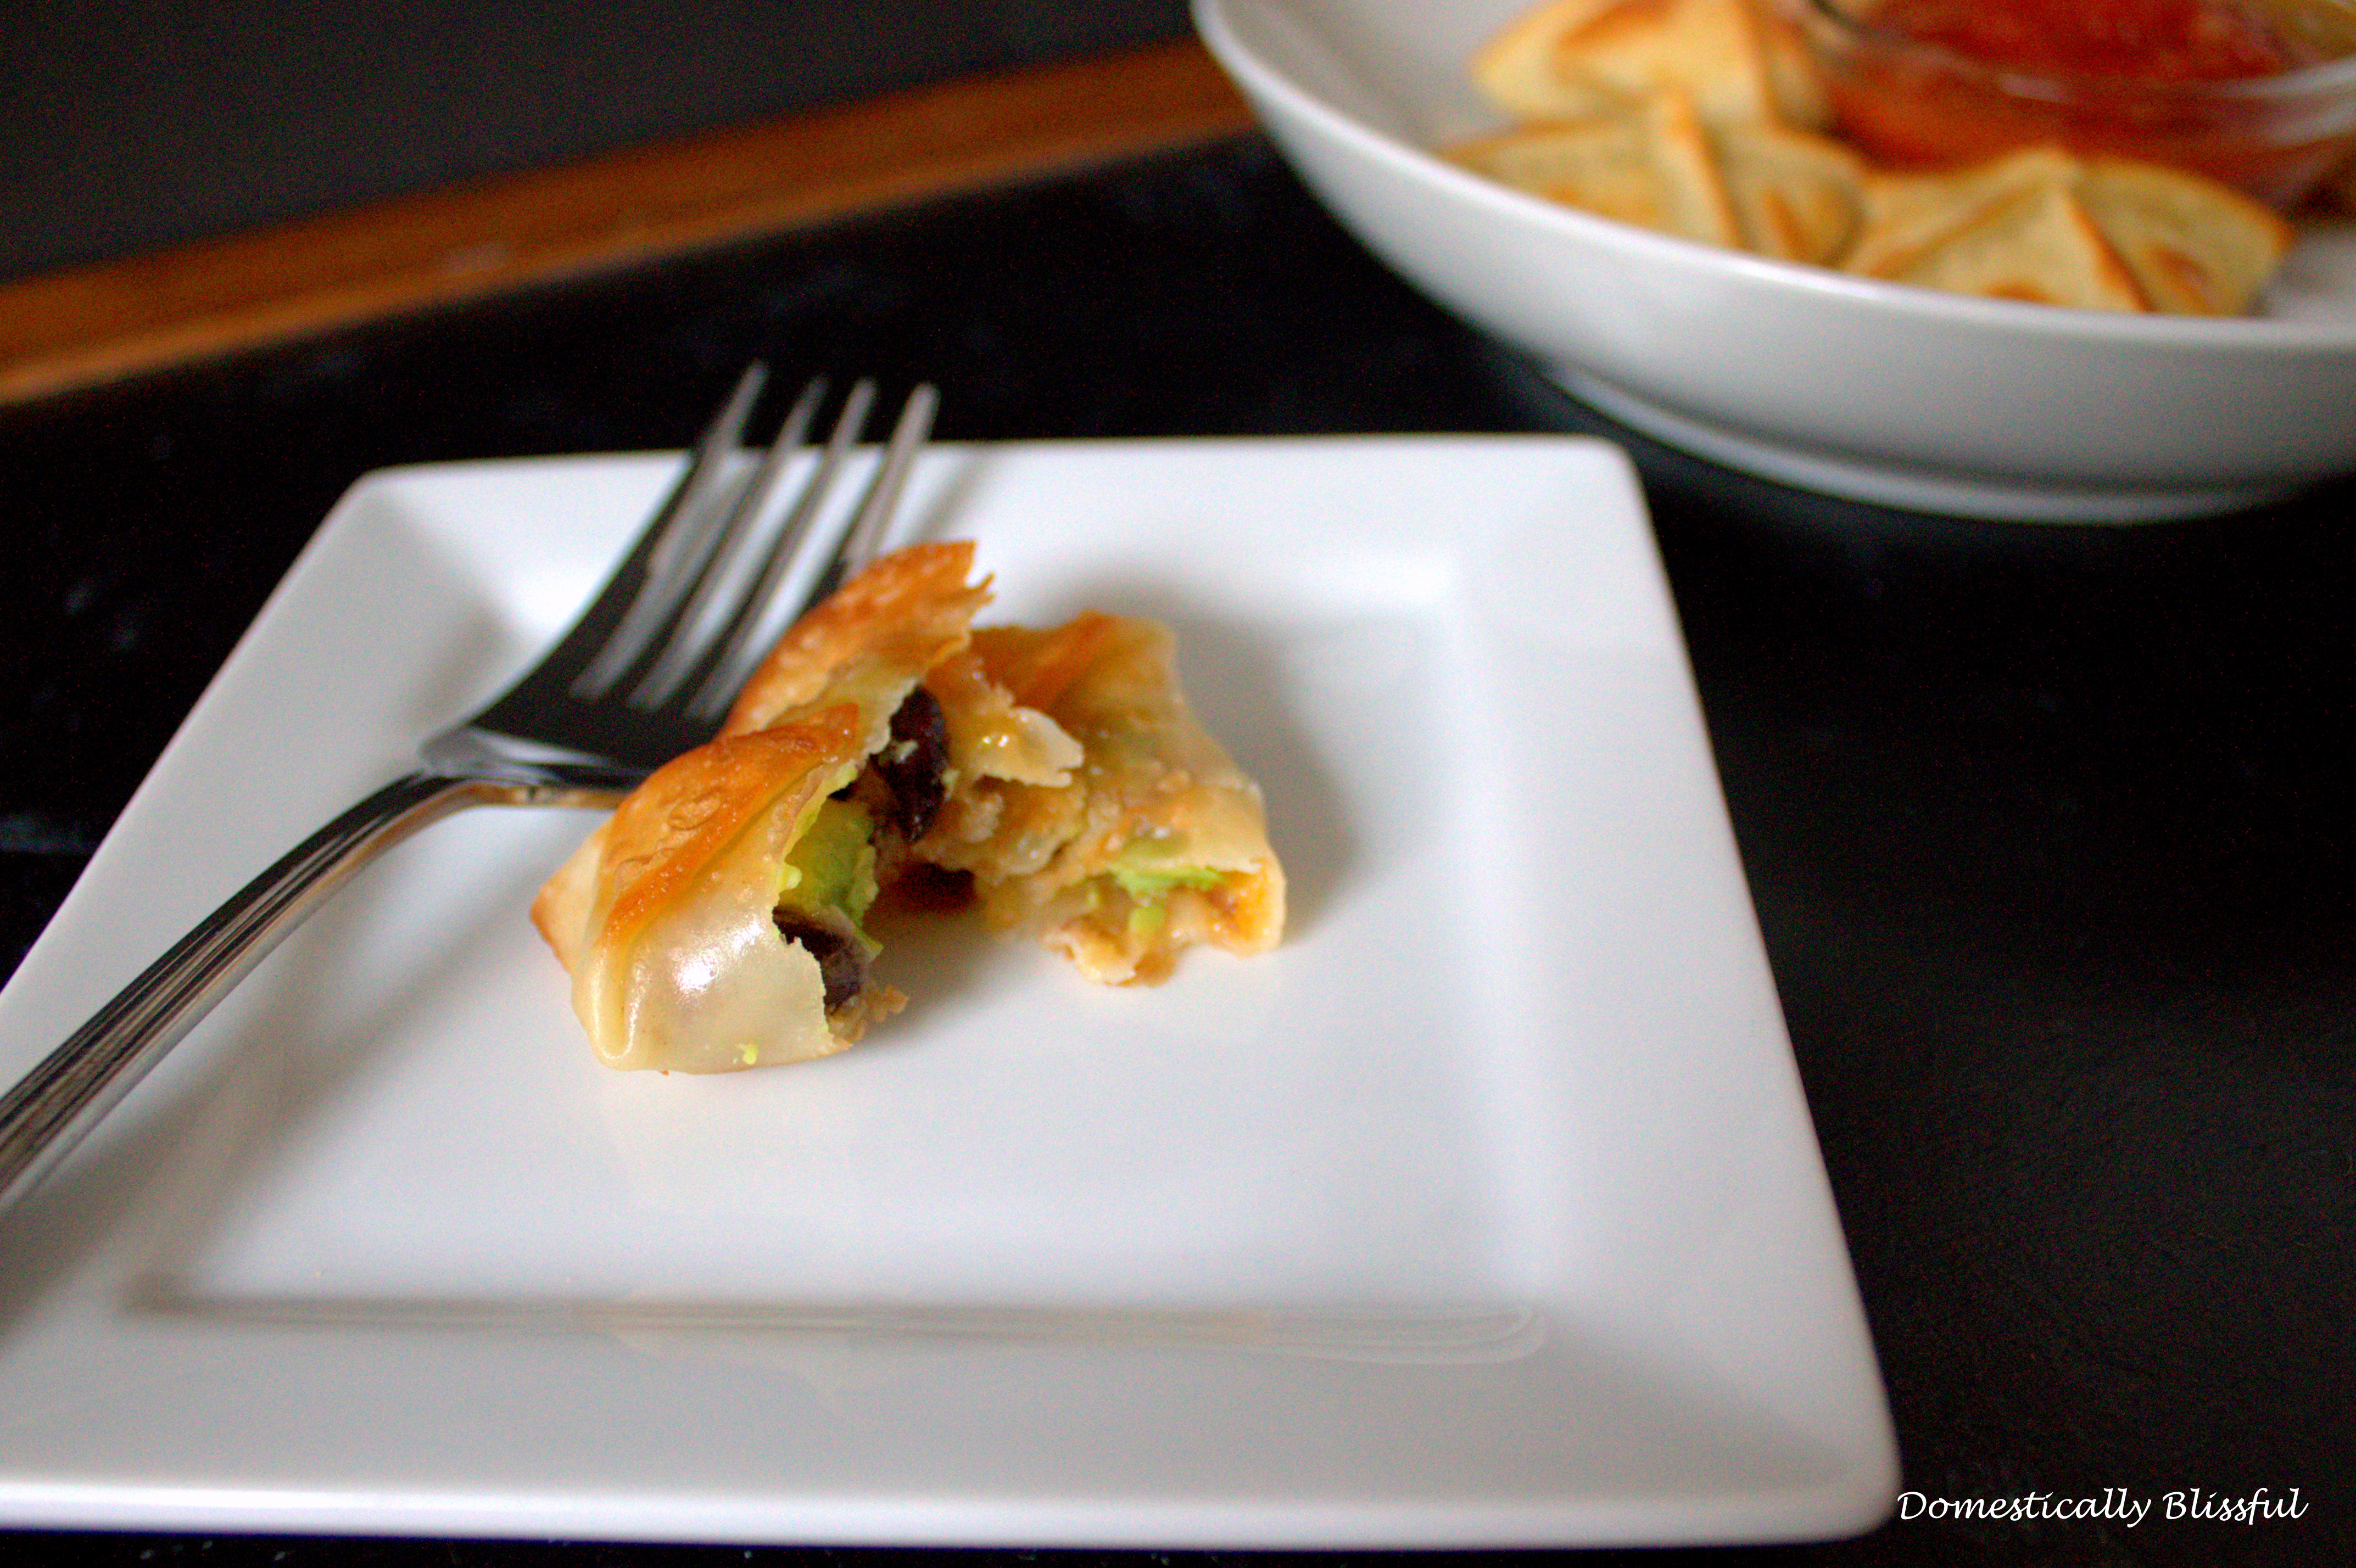 Wanton filled with beans and cheese